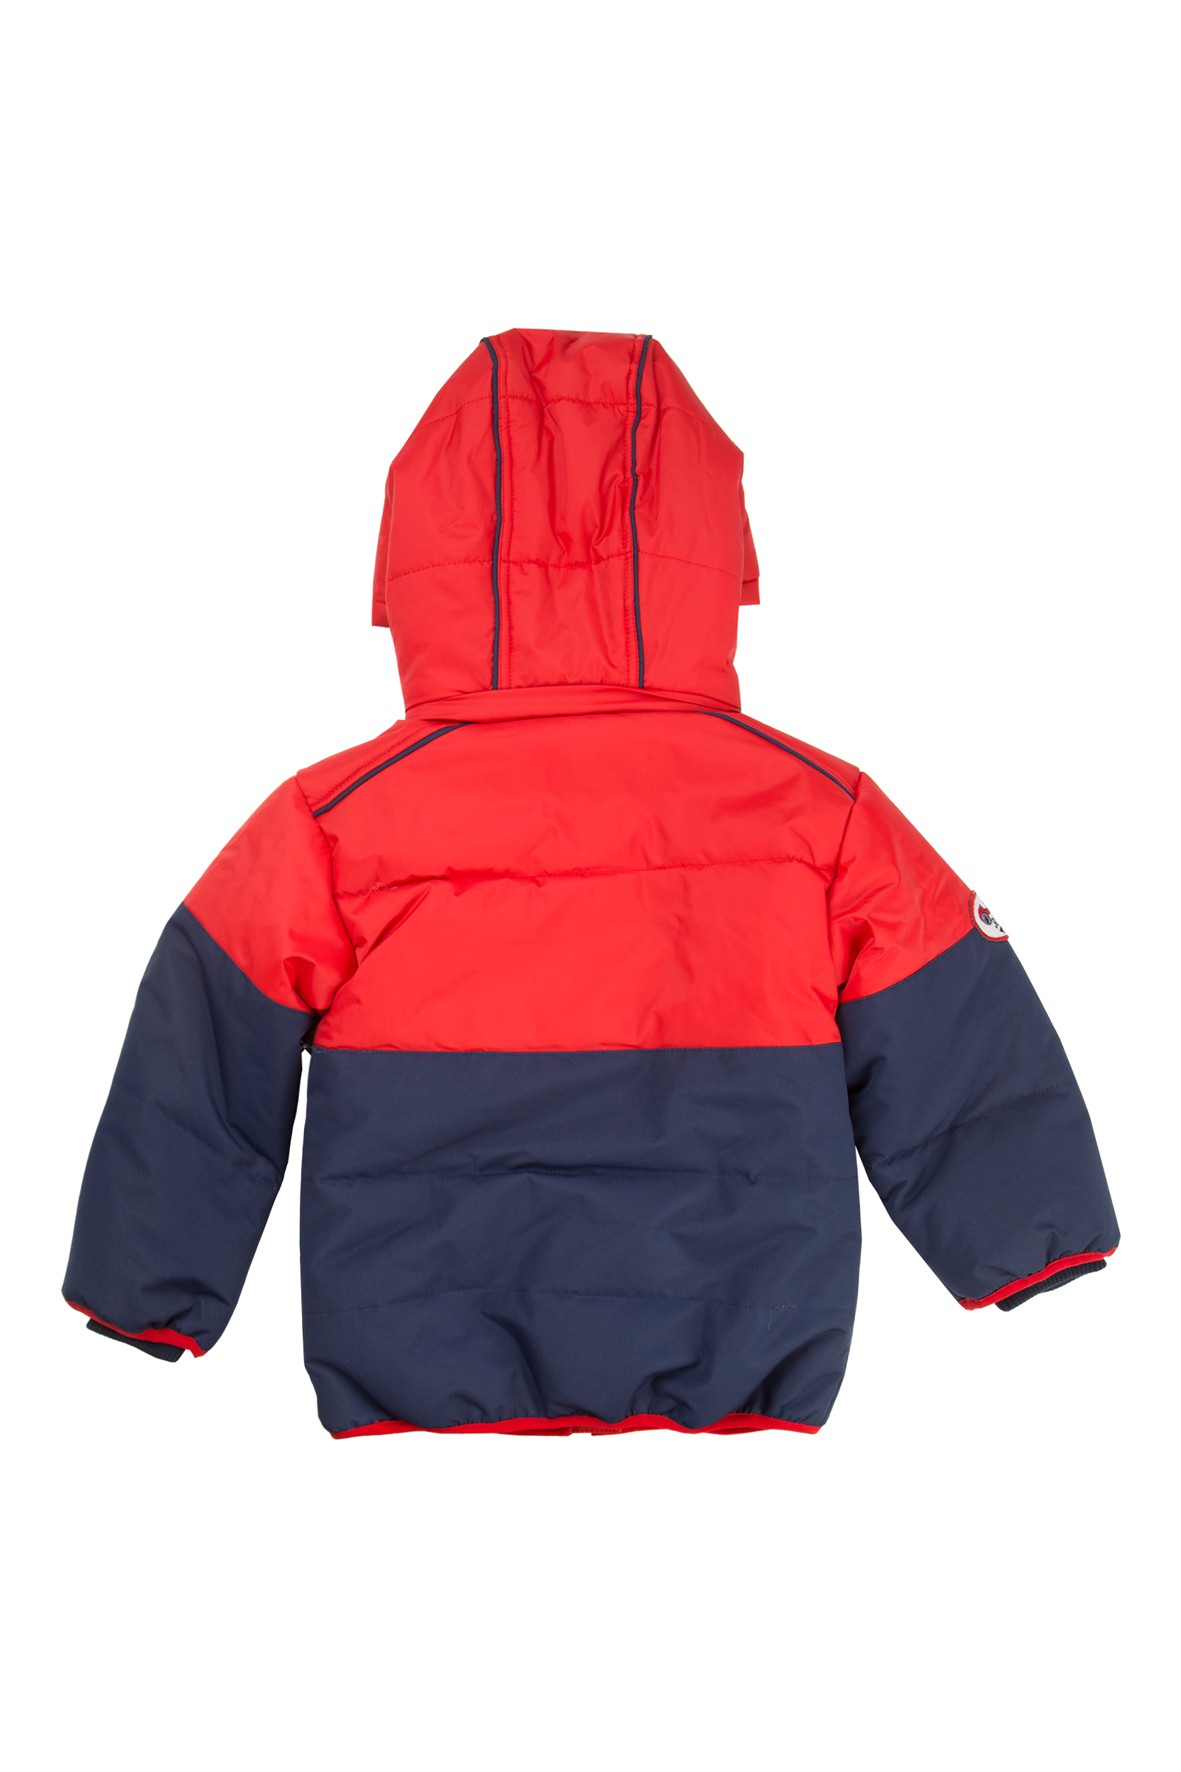 Meatball the infamous yeet vine kid speaks out as well 1970s fashion - Jacket For Baby Boy 5a2906